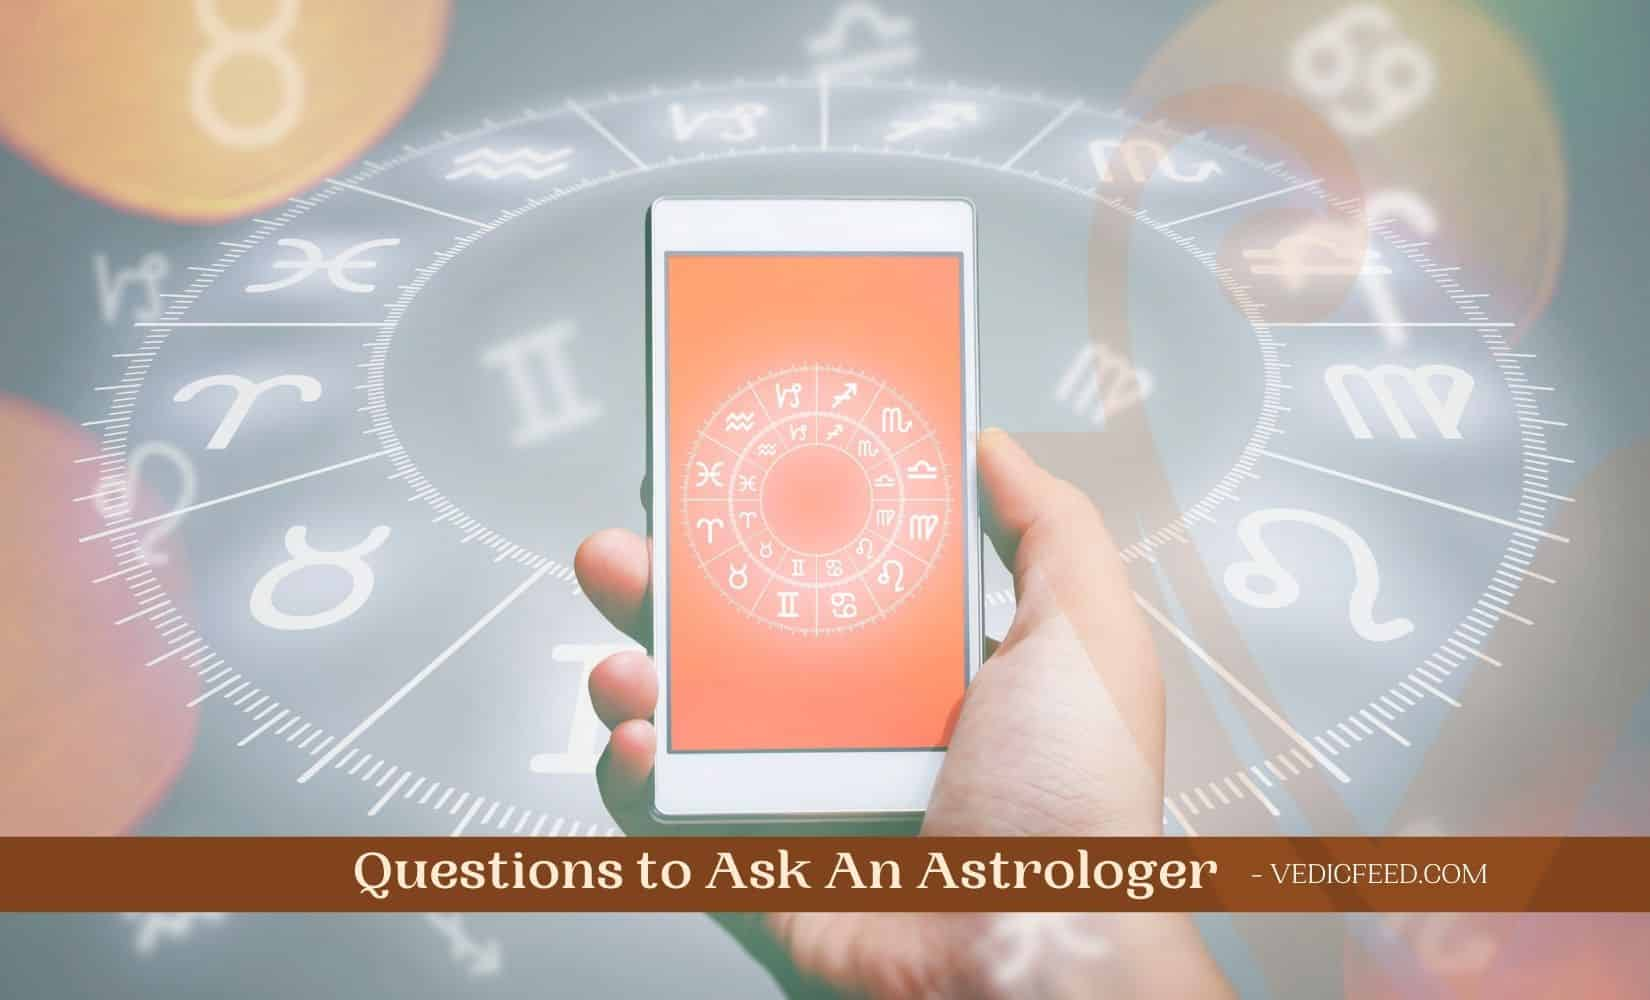 Questions to Ask An Astrologer